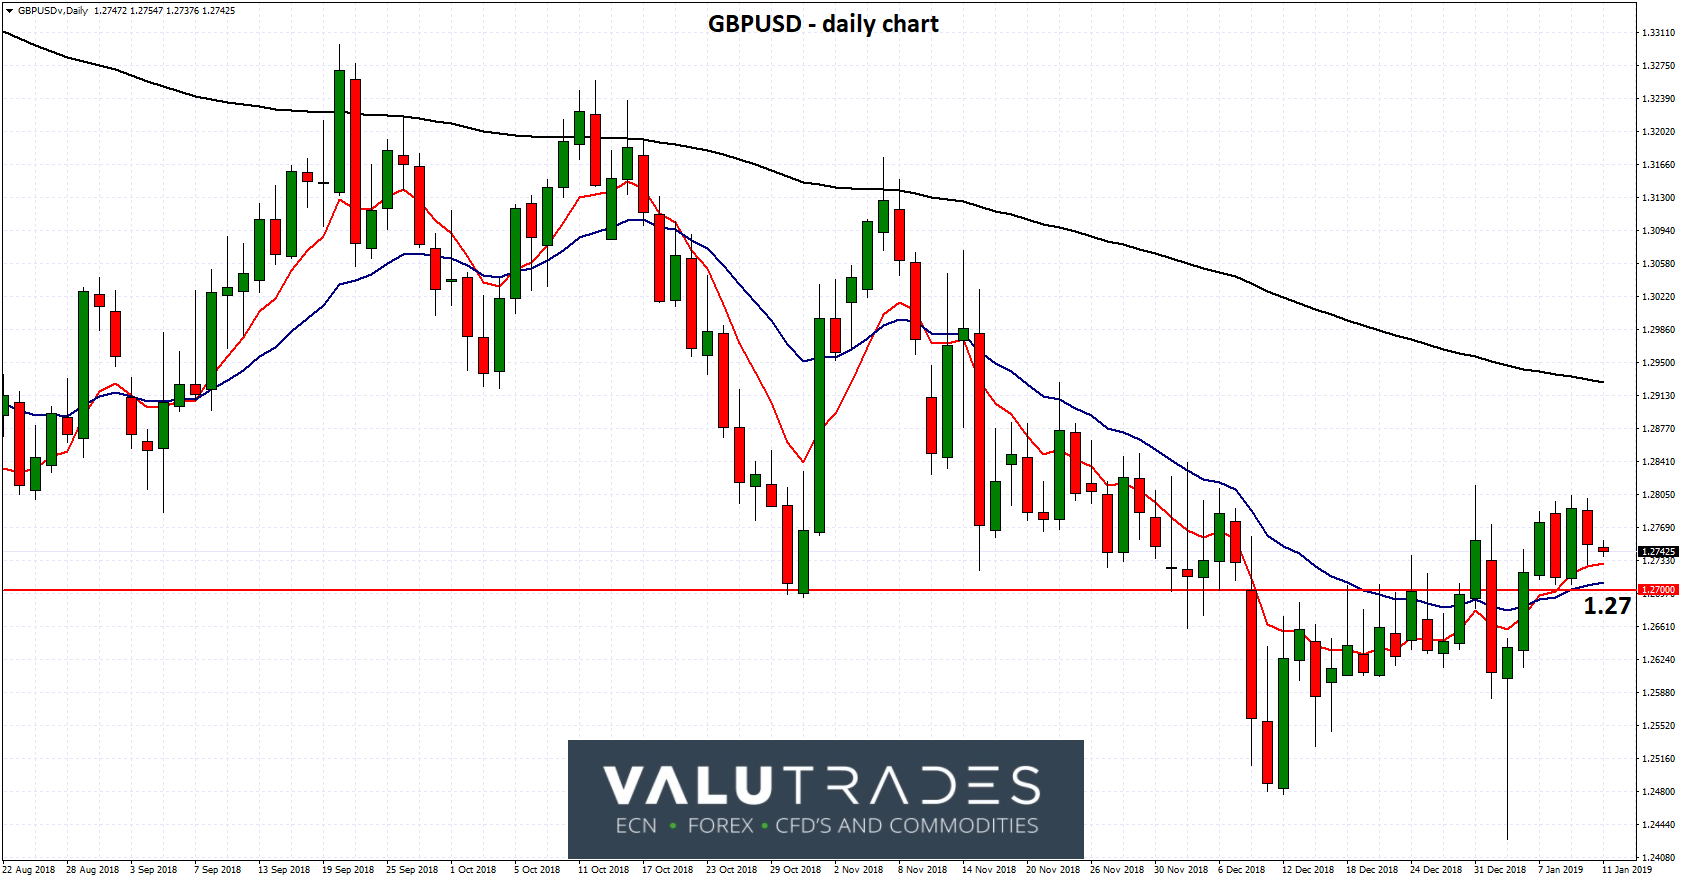 GBPUSD - Looking for Support at 1.27 Again as Brexit Future Unknown